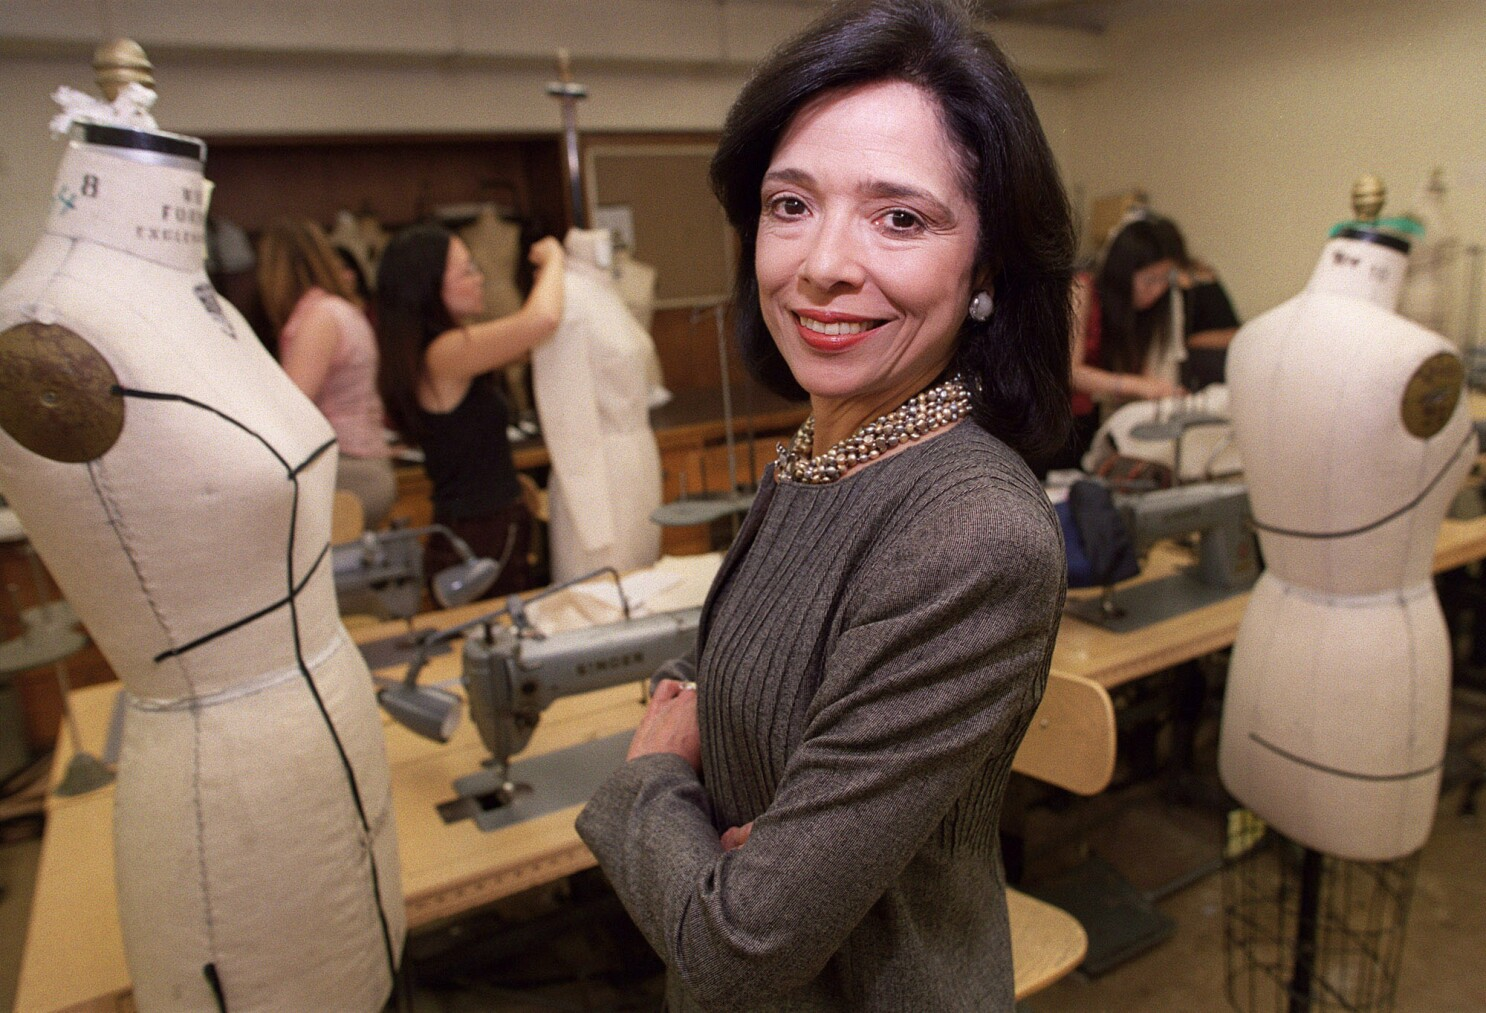 Fashion College Probes Runway Show Criticized As Racist The San Diego Union Tribune